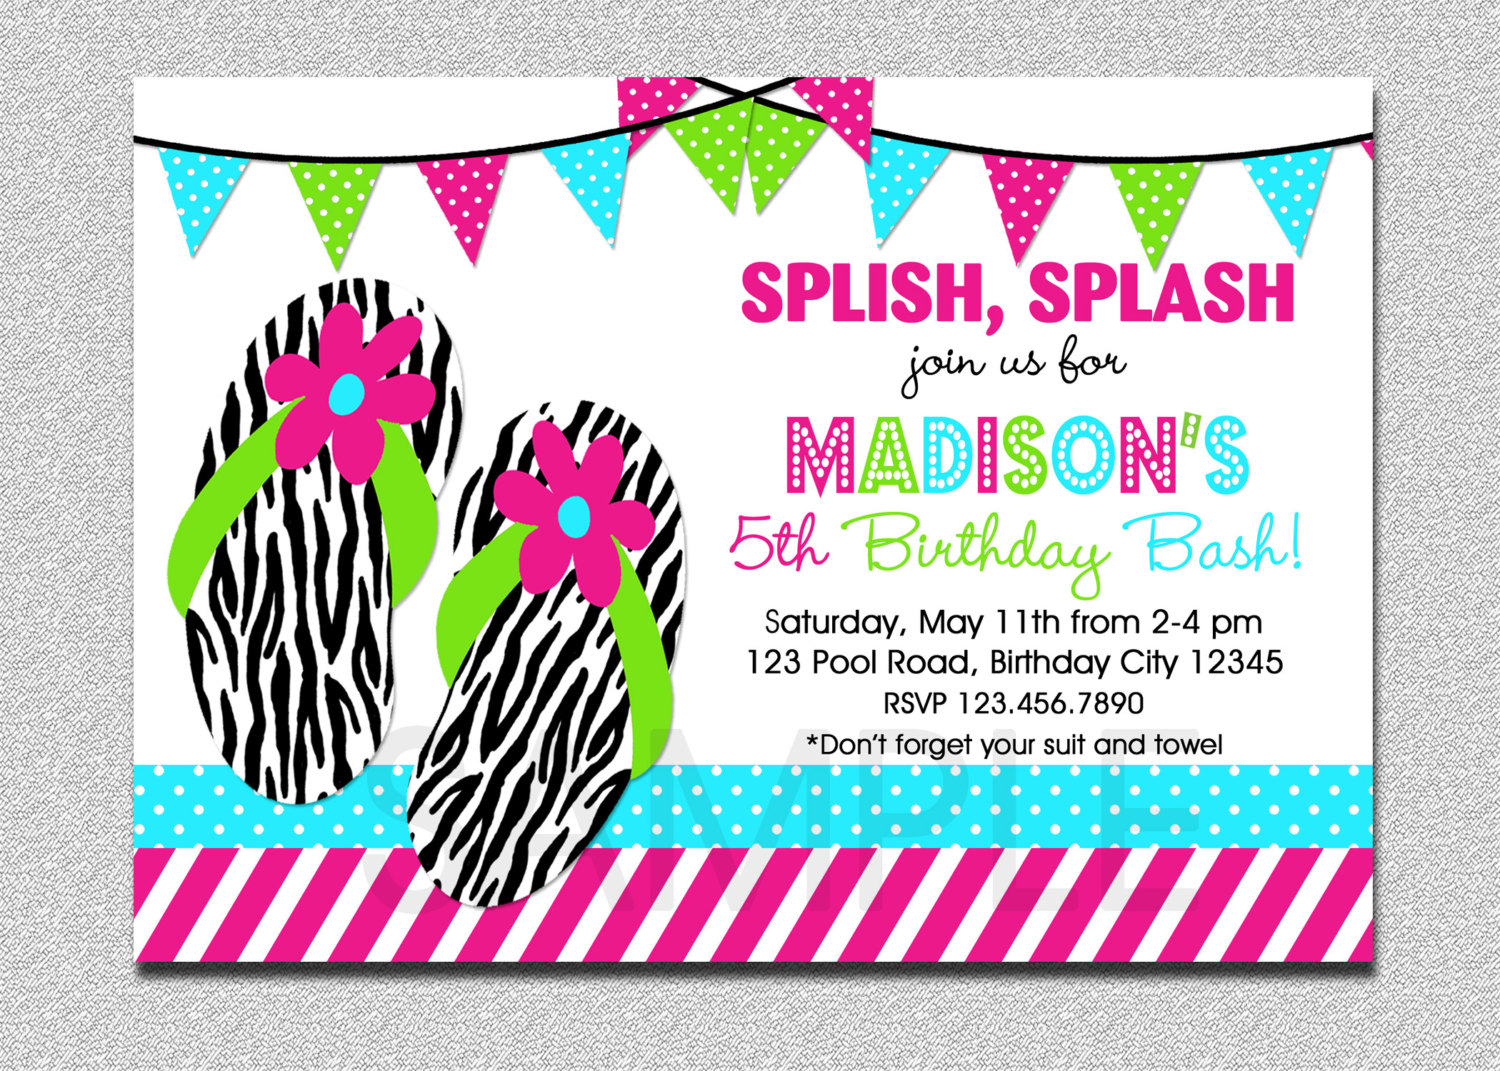 Pizza Party Invitations   Clipart Panda - Free Clipart Images